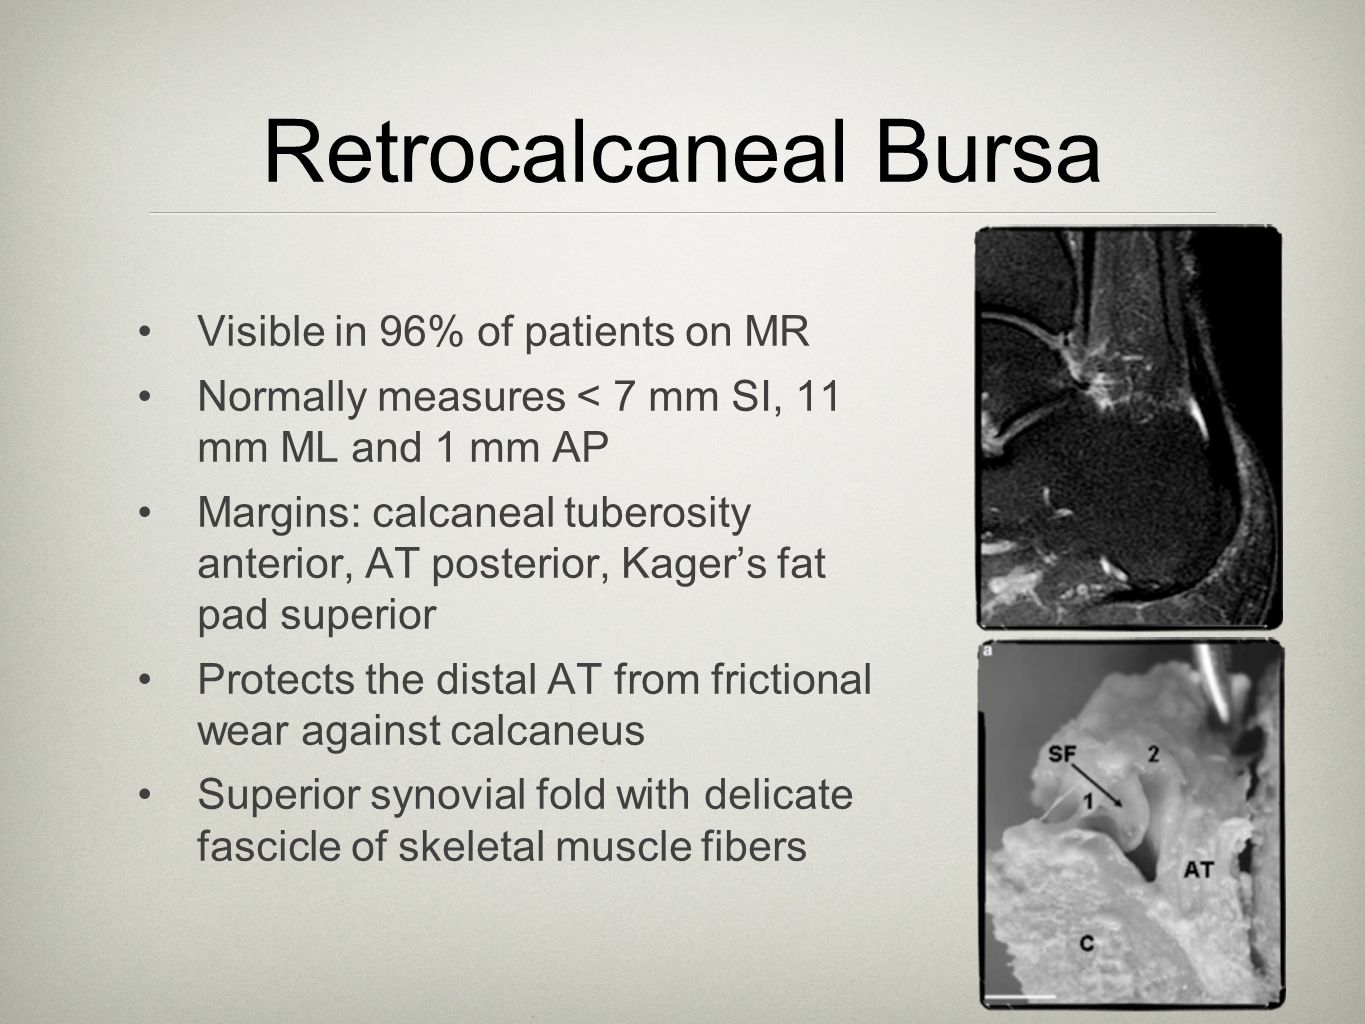 Retrocalcaneal Bursa Visible in 96% of patients on MR